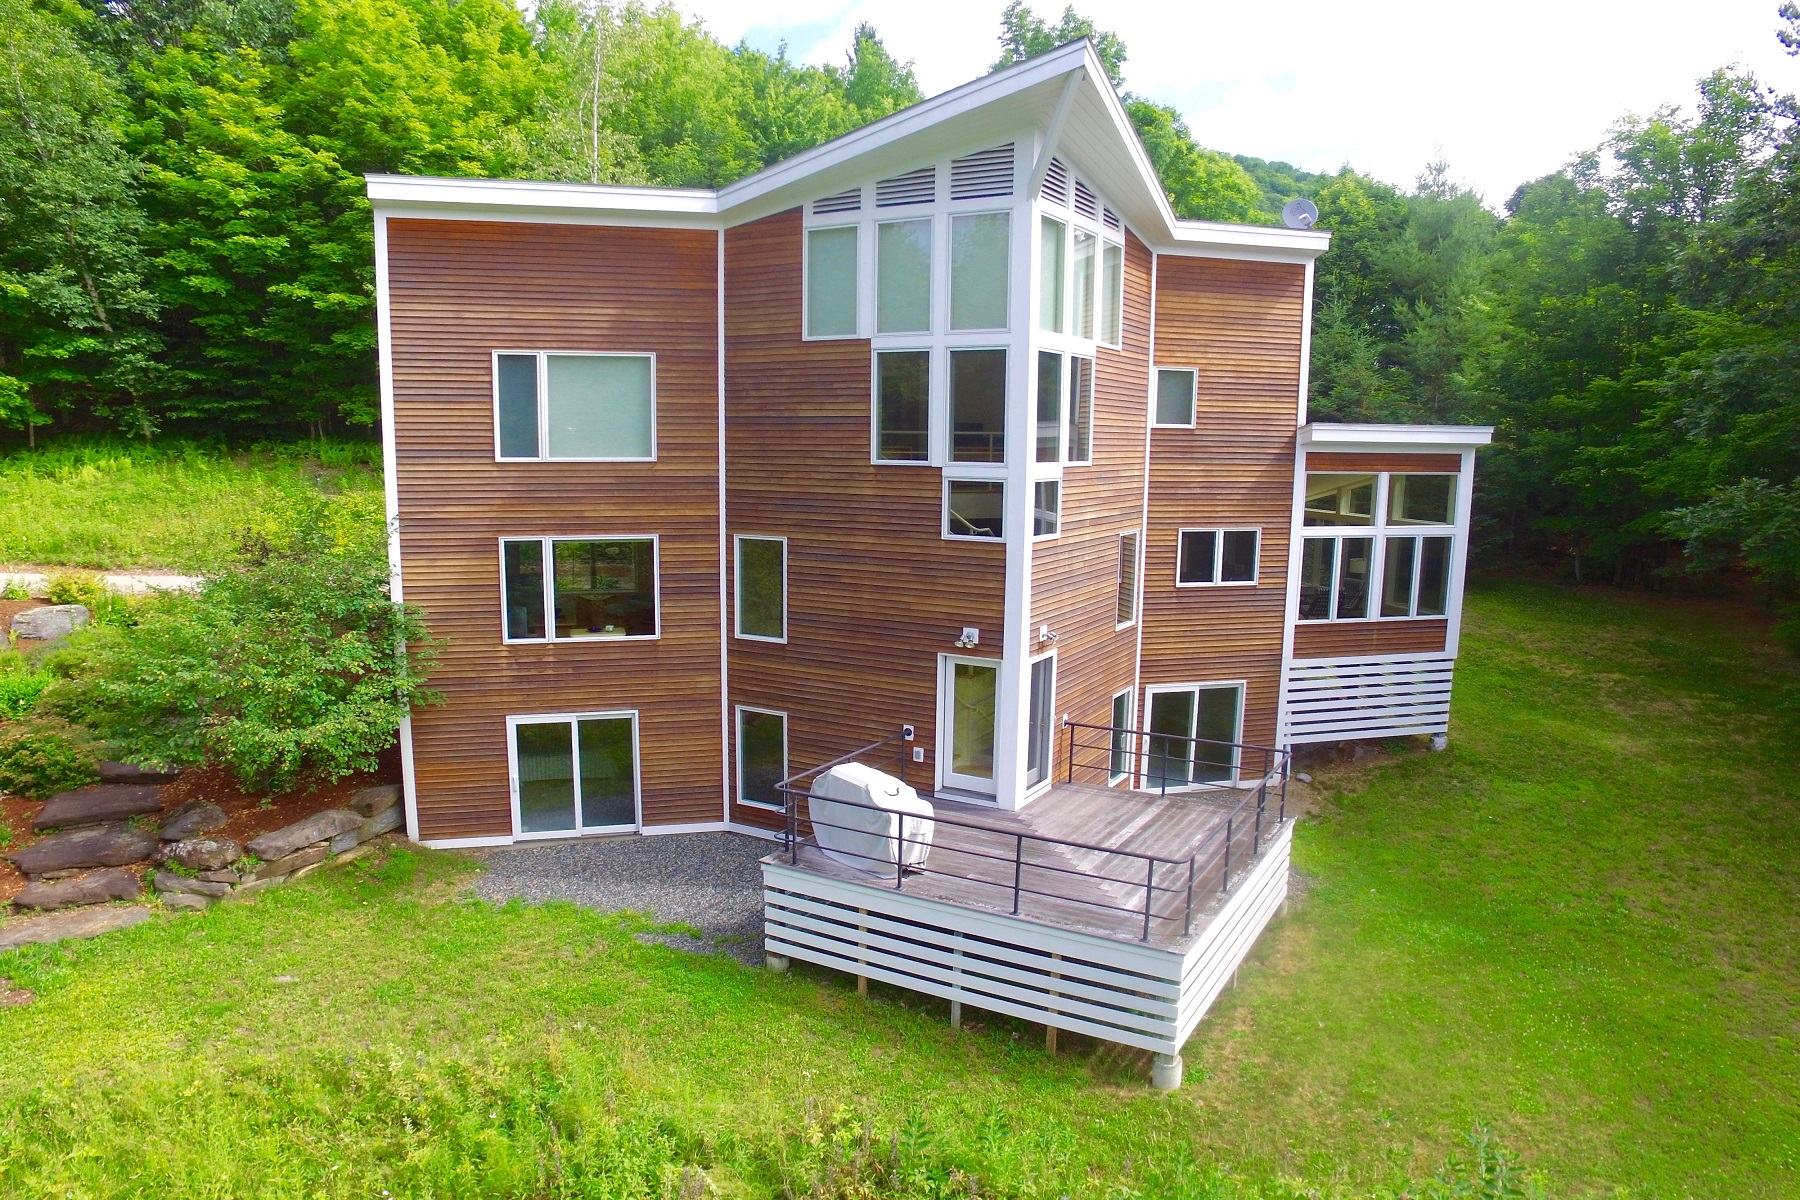 Single Family Homes for Sale at Abundance of Natural Light 614 Deer Brook Way Woodstock, Vermont 05091 United States